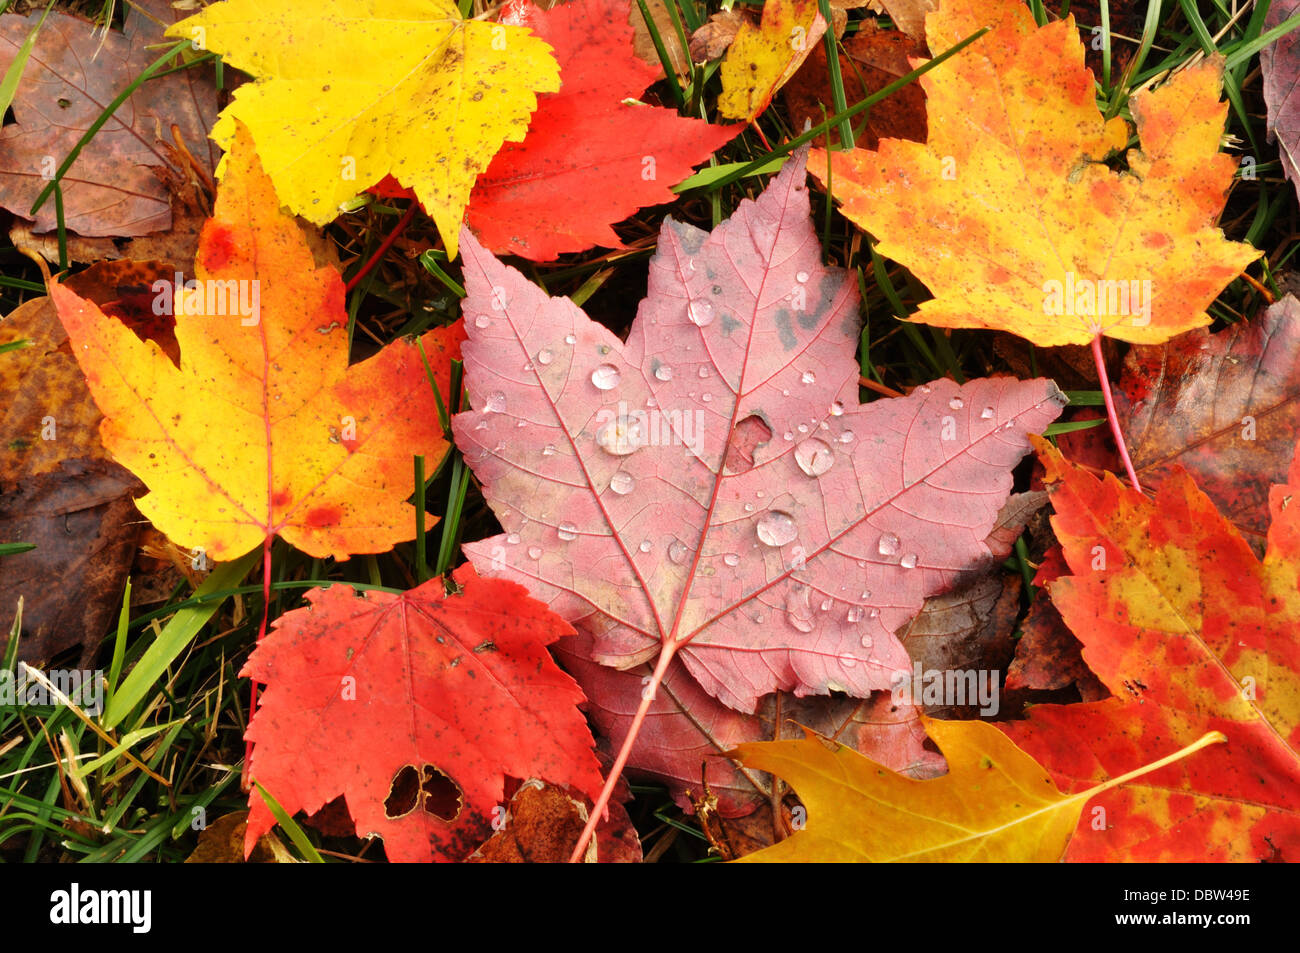 Autumn leaves - maple leaves - Stock Image